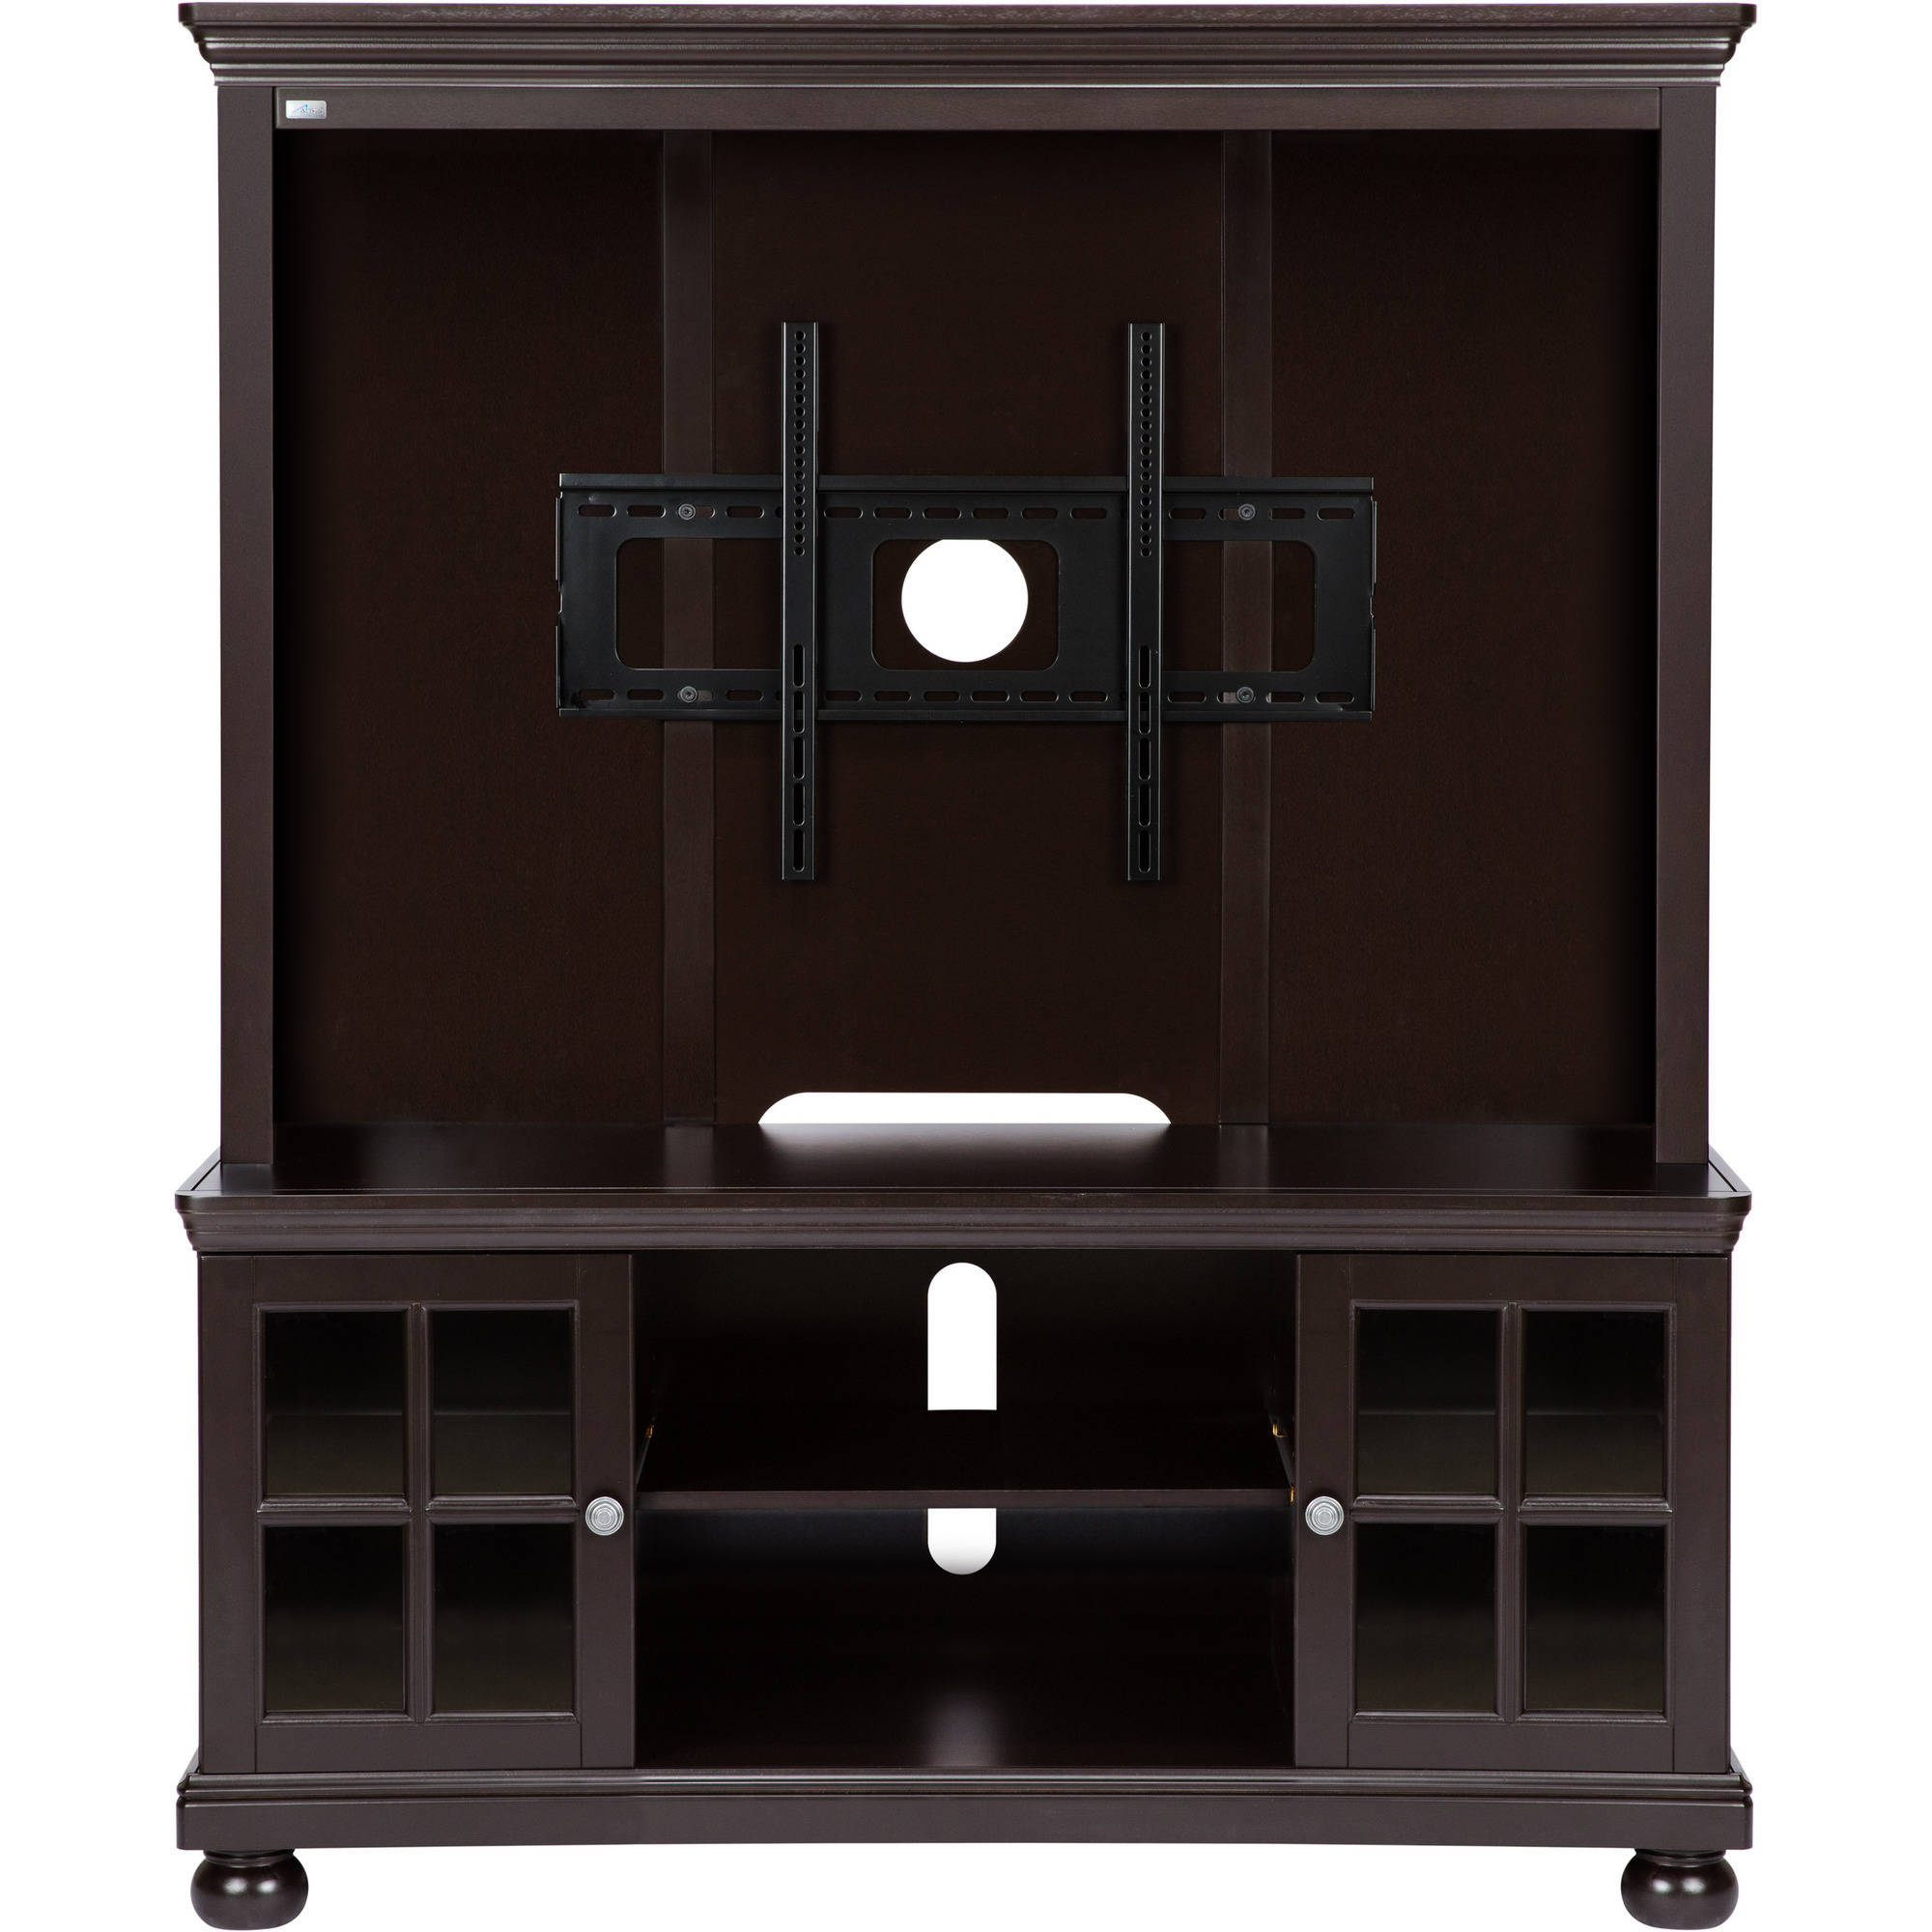 doors drawer of with elegant tv cabinet hutch equipped living room stand modern wood made be stands for